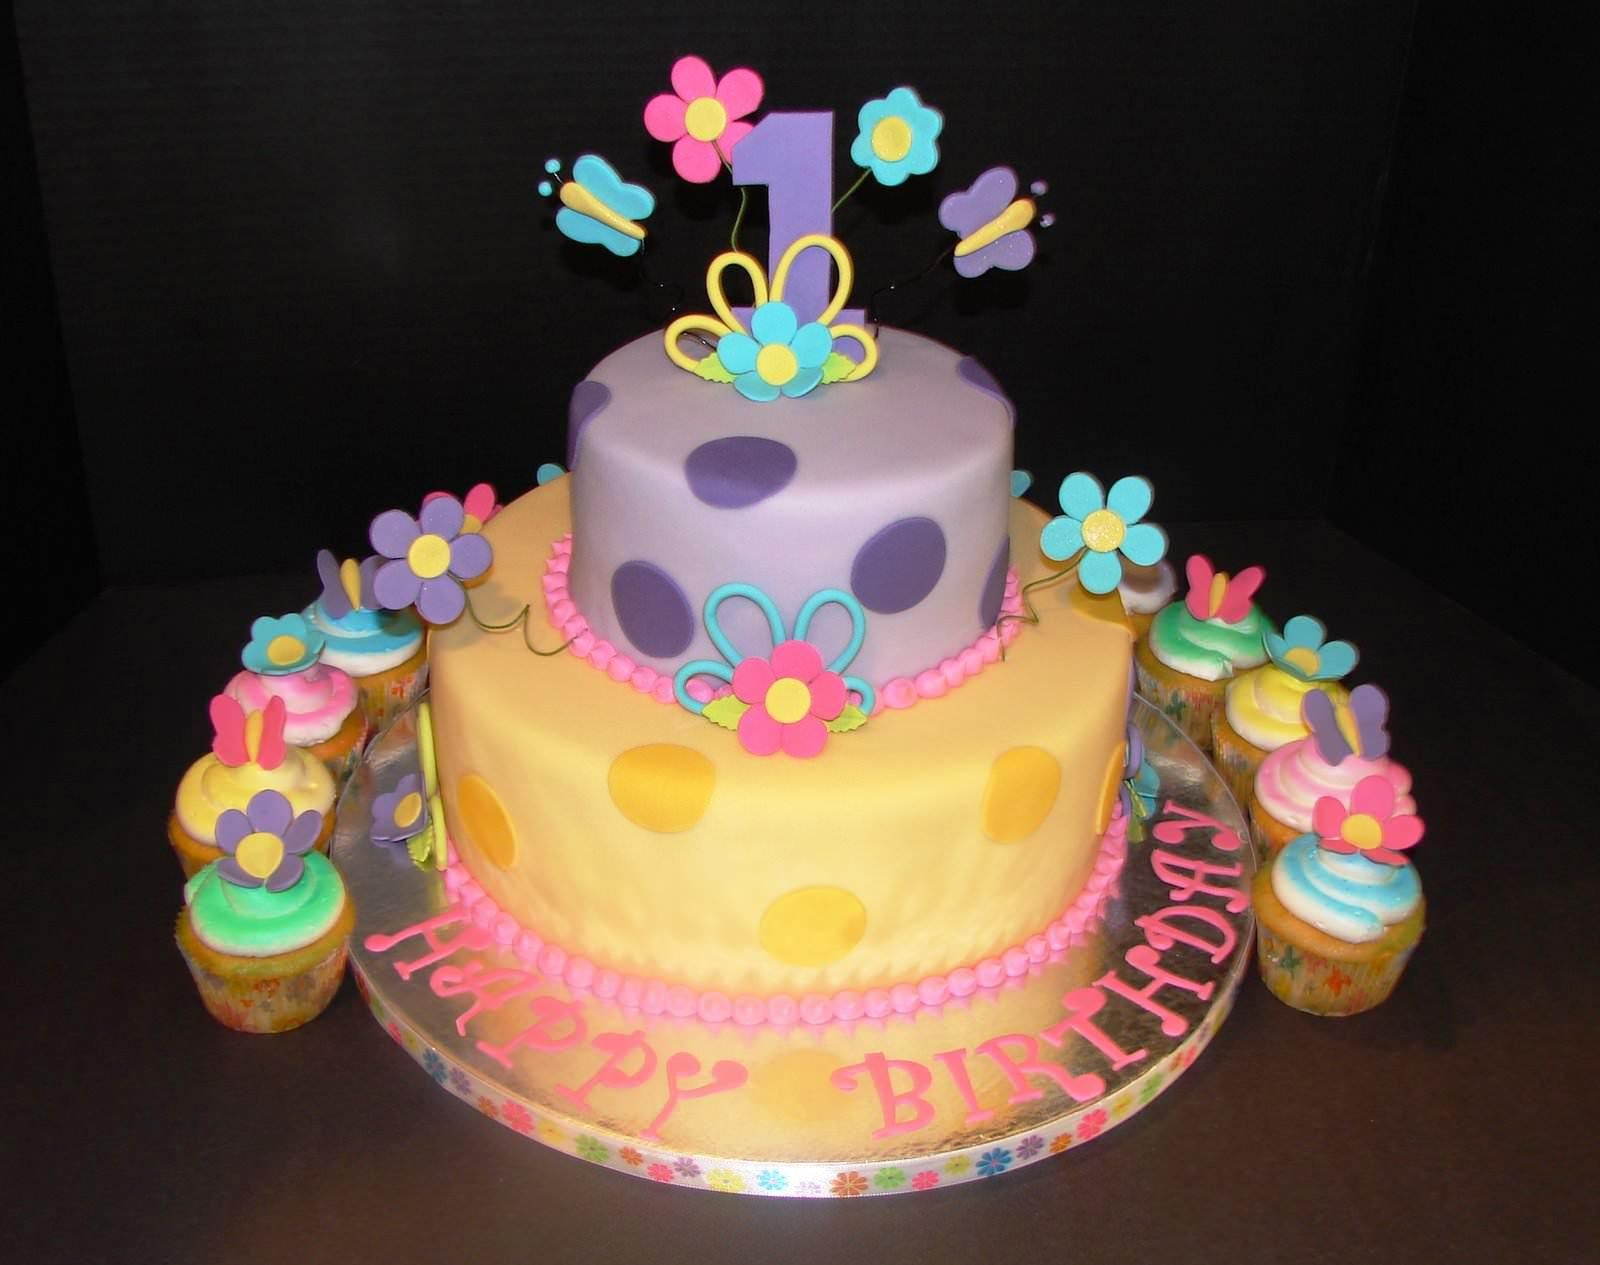 Excellent Safeway Cakes Bakery Birthday Cake Designs Yahoo Image Search Funny Birthday Cards Online Elaedamsfinfo